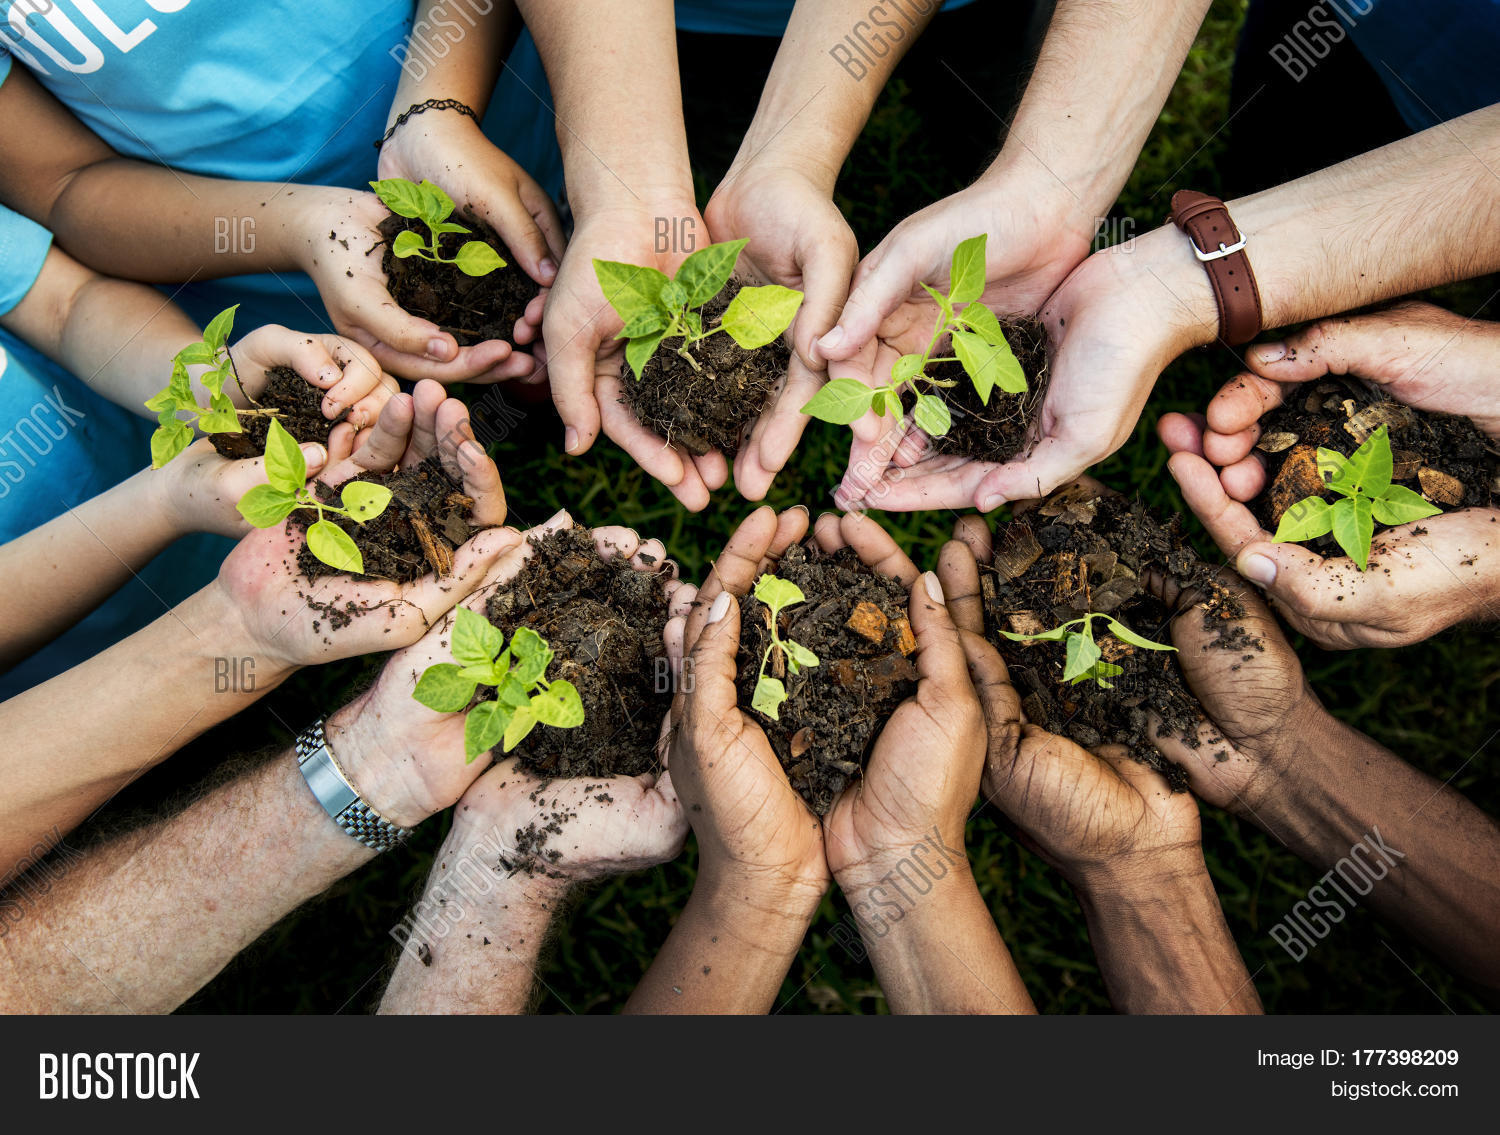 People hands cupping plant nurture image photo bigstock - Nurture images download ...